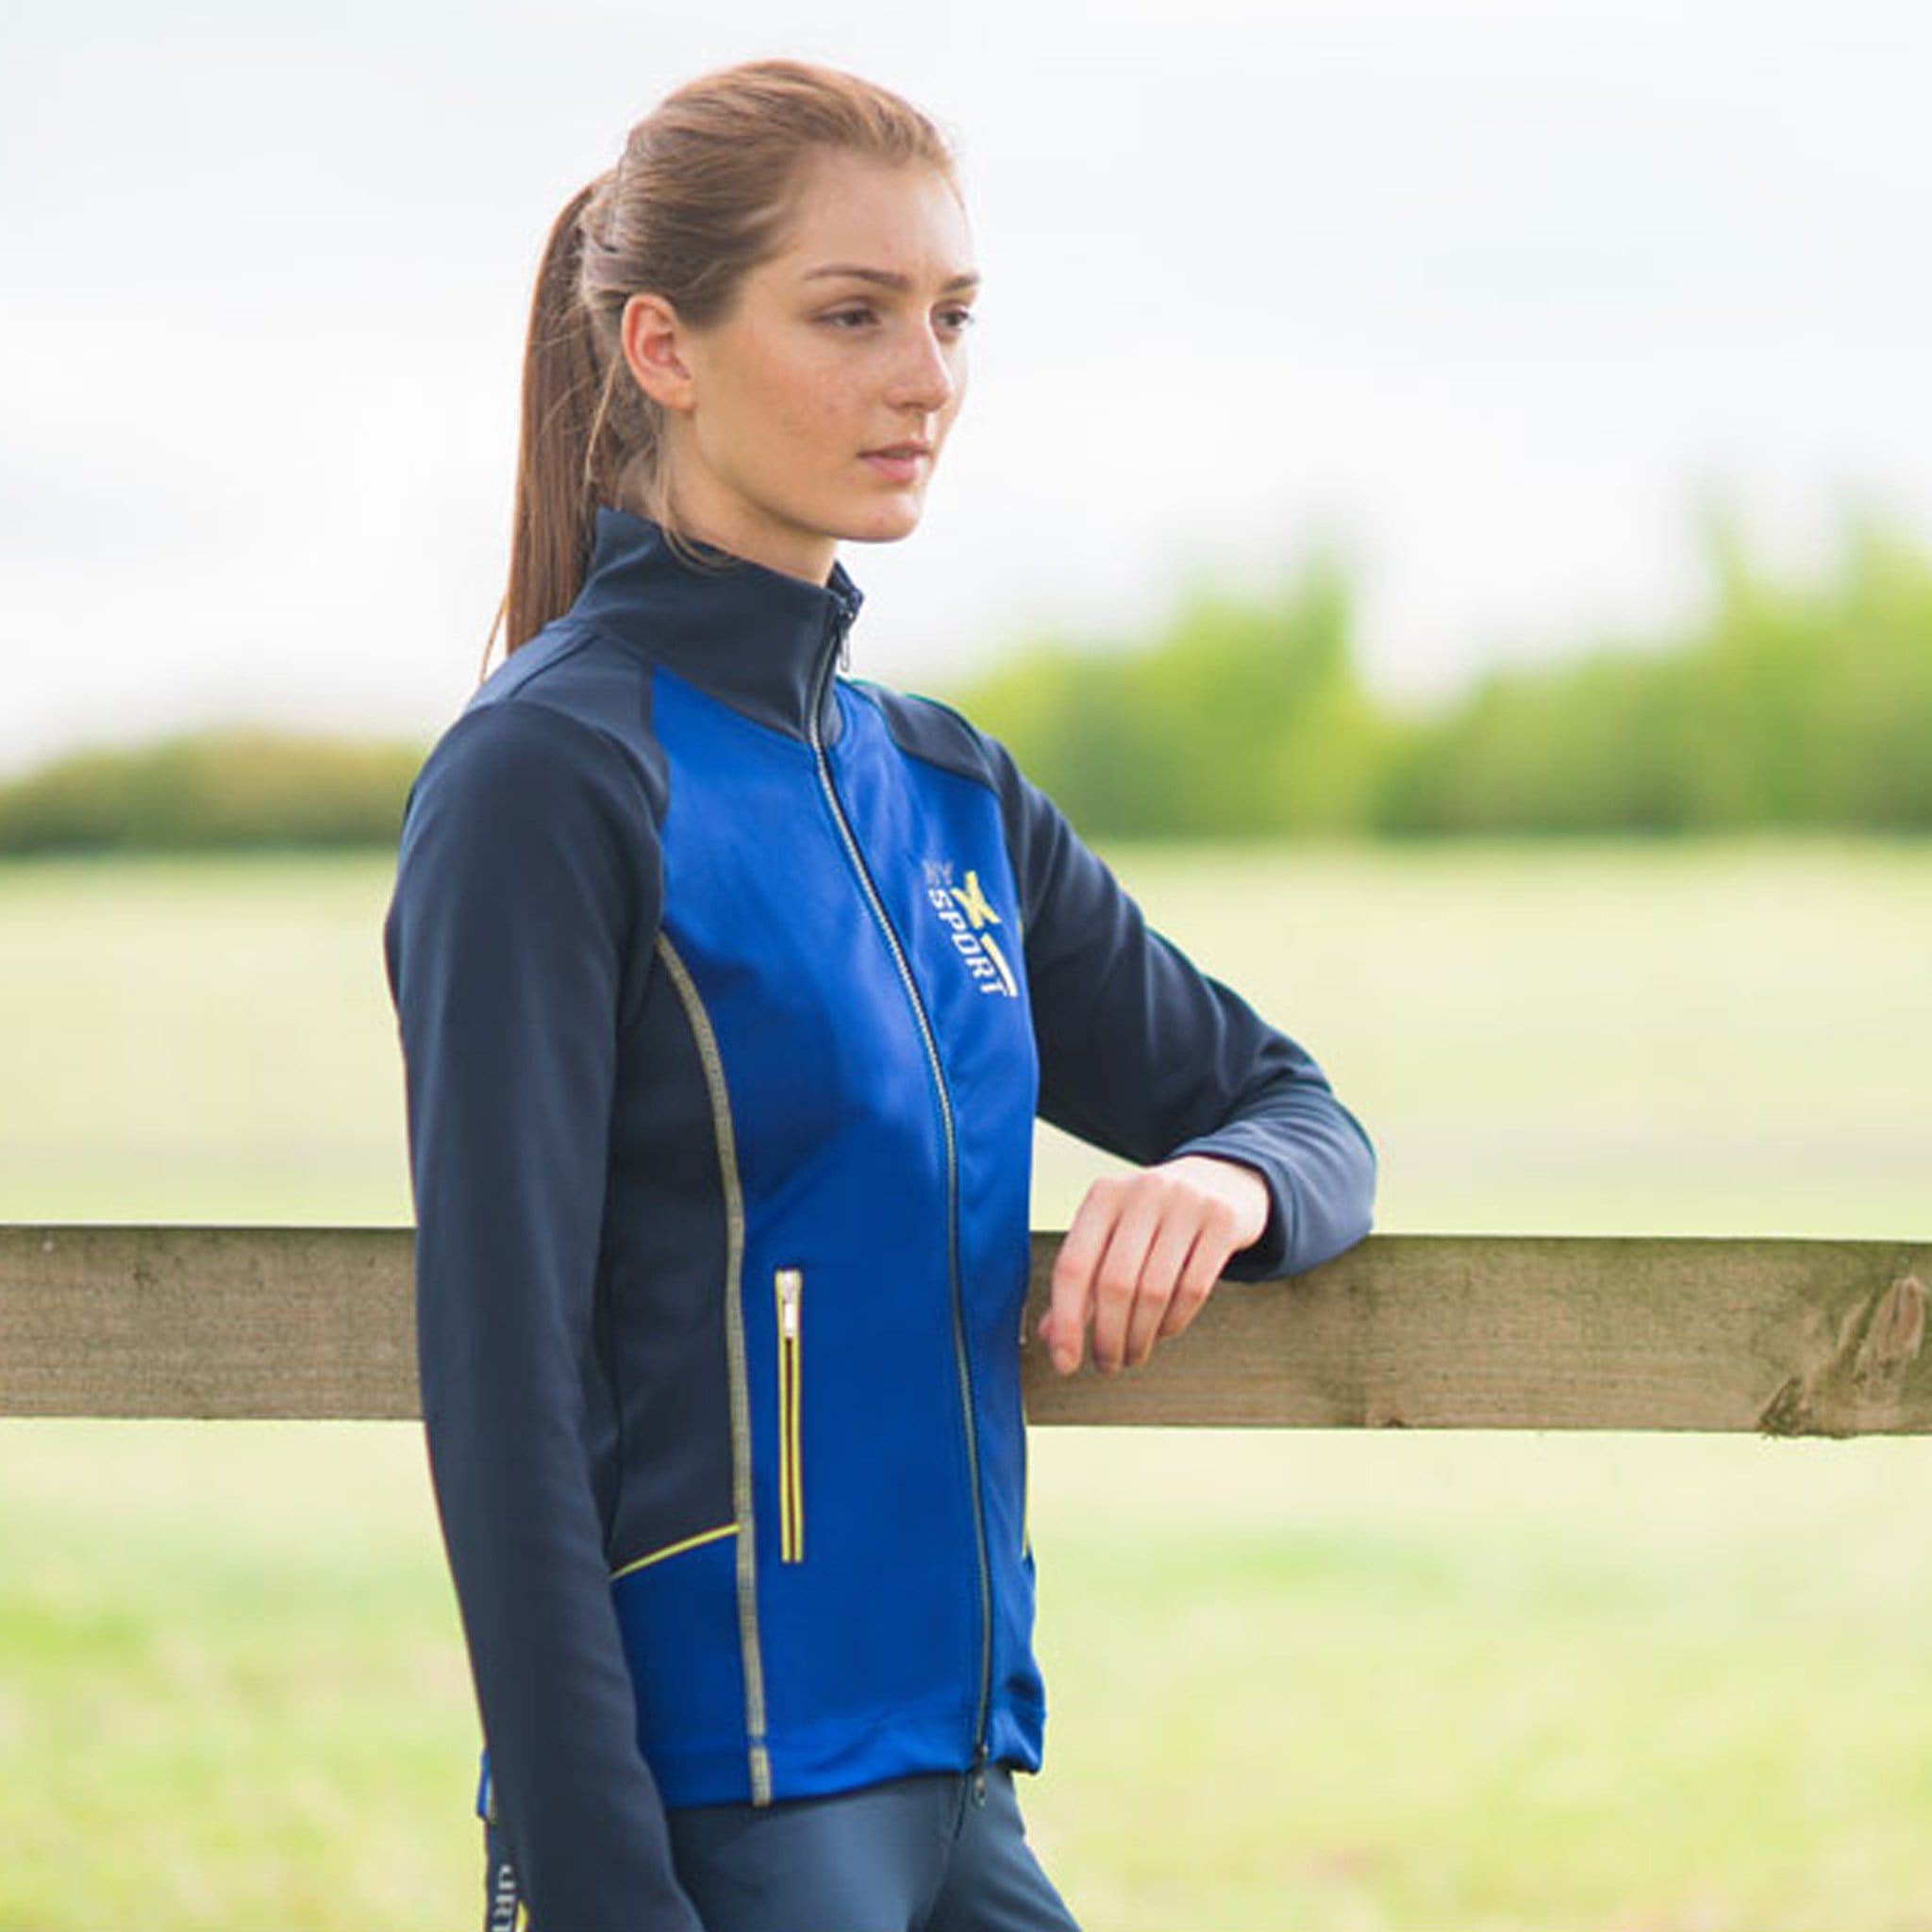 HyFASHION X Sports Jacket 22376 Side View On Model Leaning On Fence